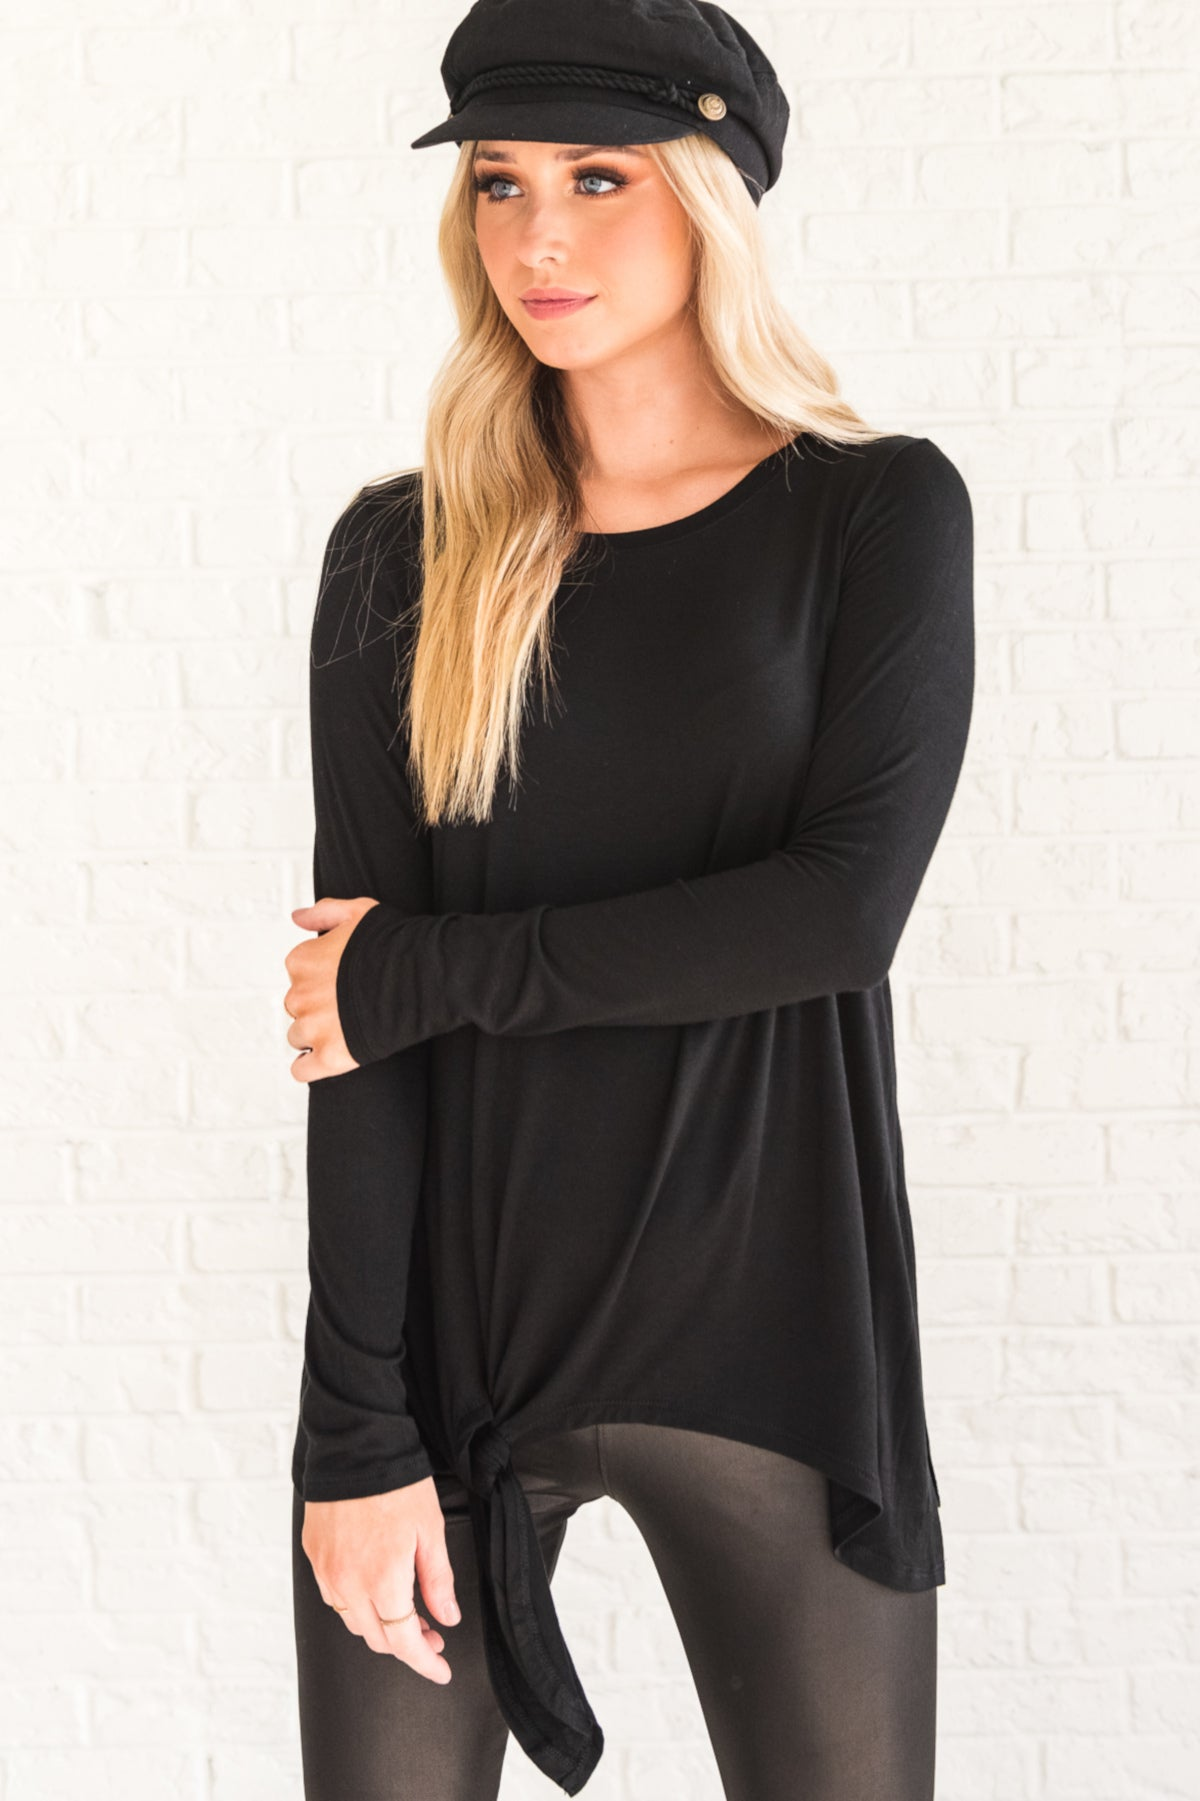 83ed59924219c Black Long Sleeve Boutique Tops for Women